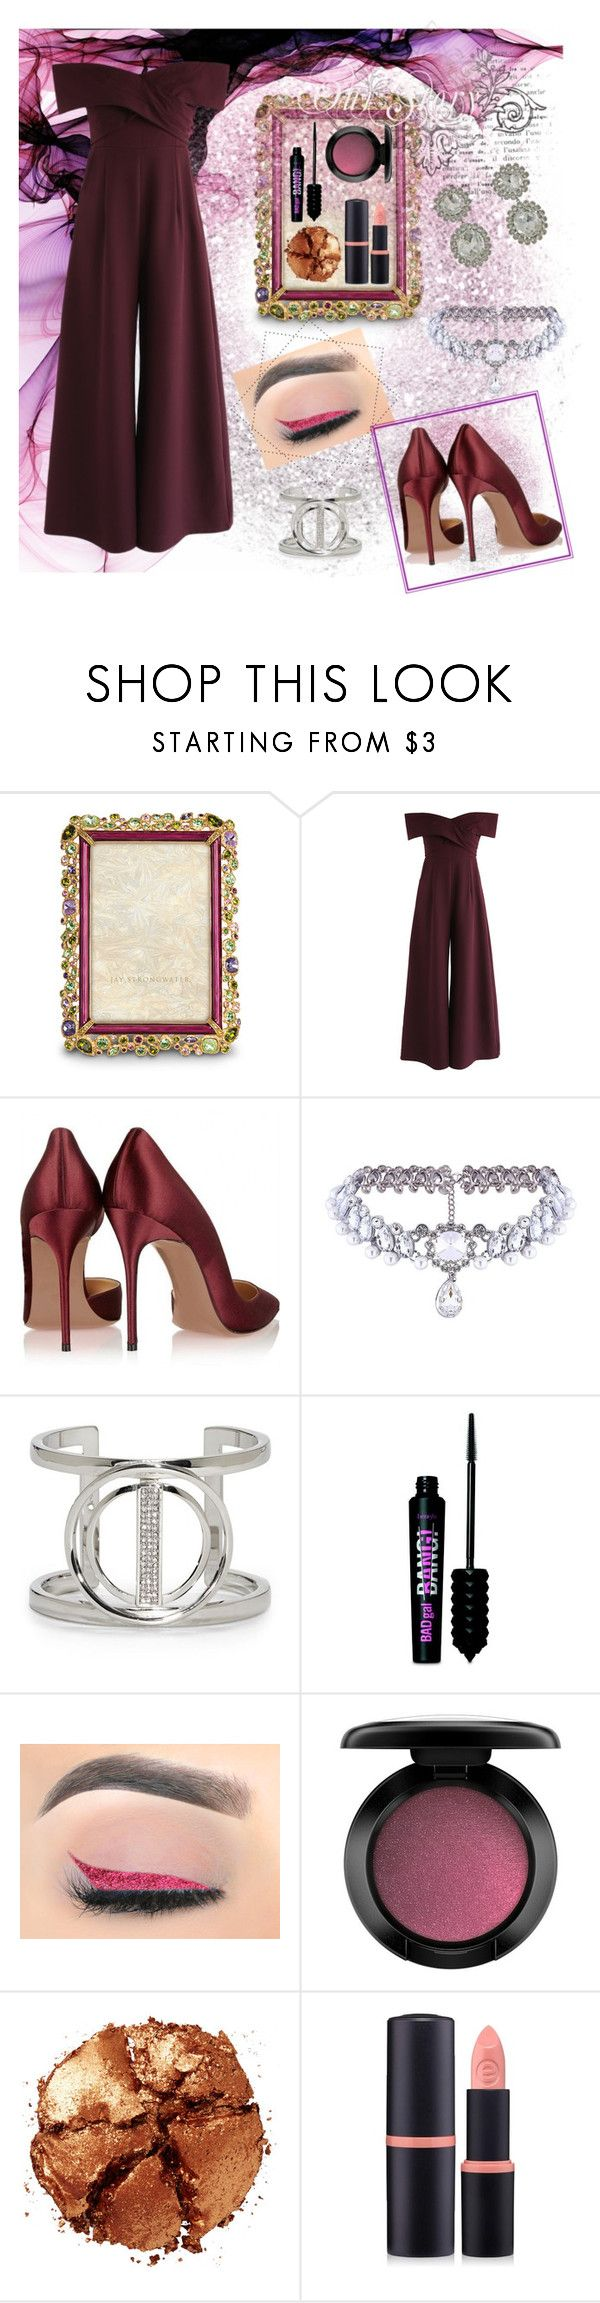 """""""Bordeaux"""" by ale-mada ❤ liked on Polyvore featuring Jay Strongwater, Chicwish, WithChic, Vince Camuto, Benefit, John Lewis, Pat McGrath and Forever 21"""